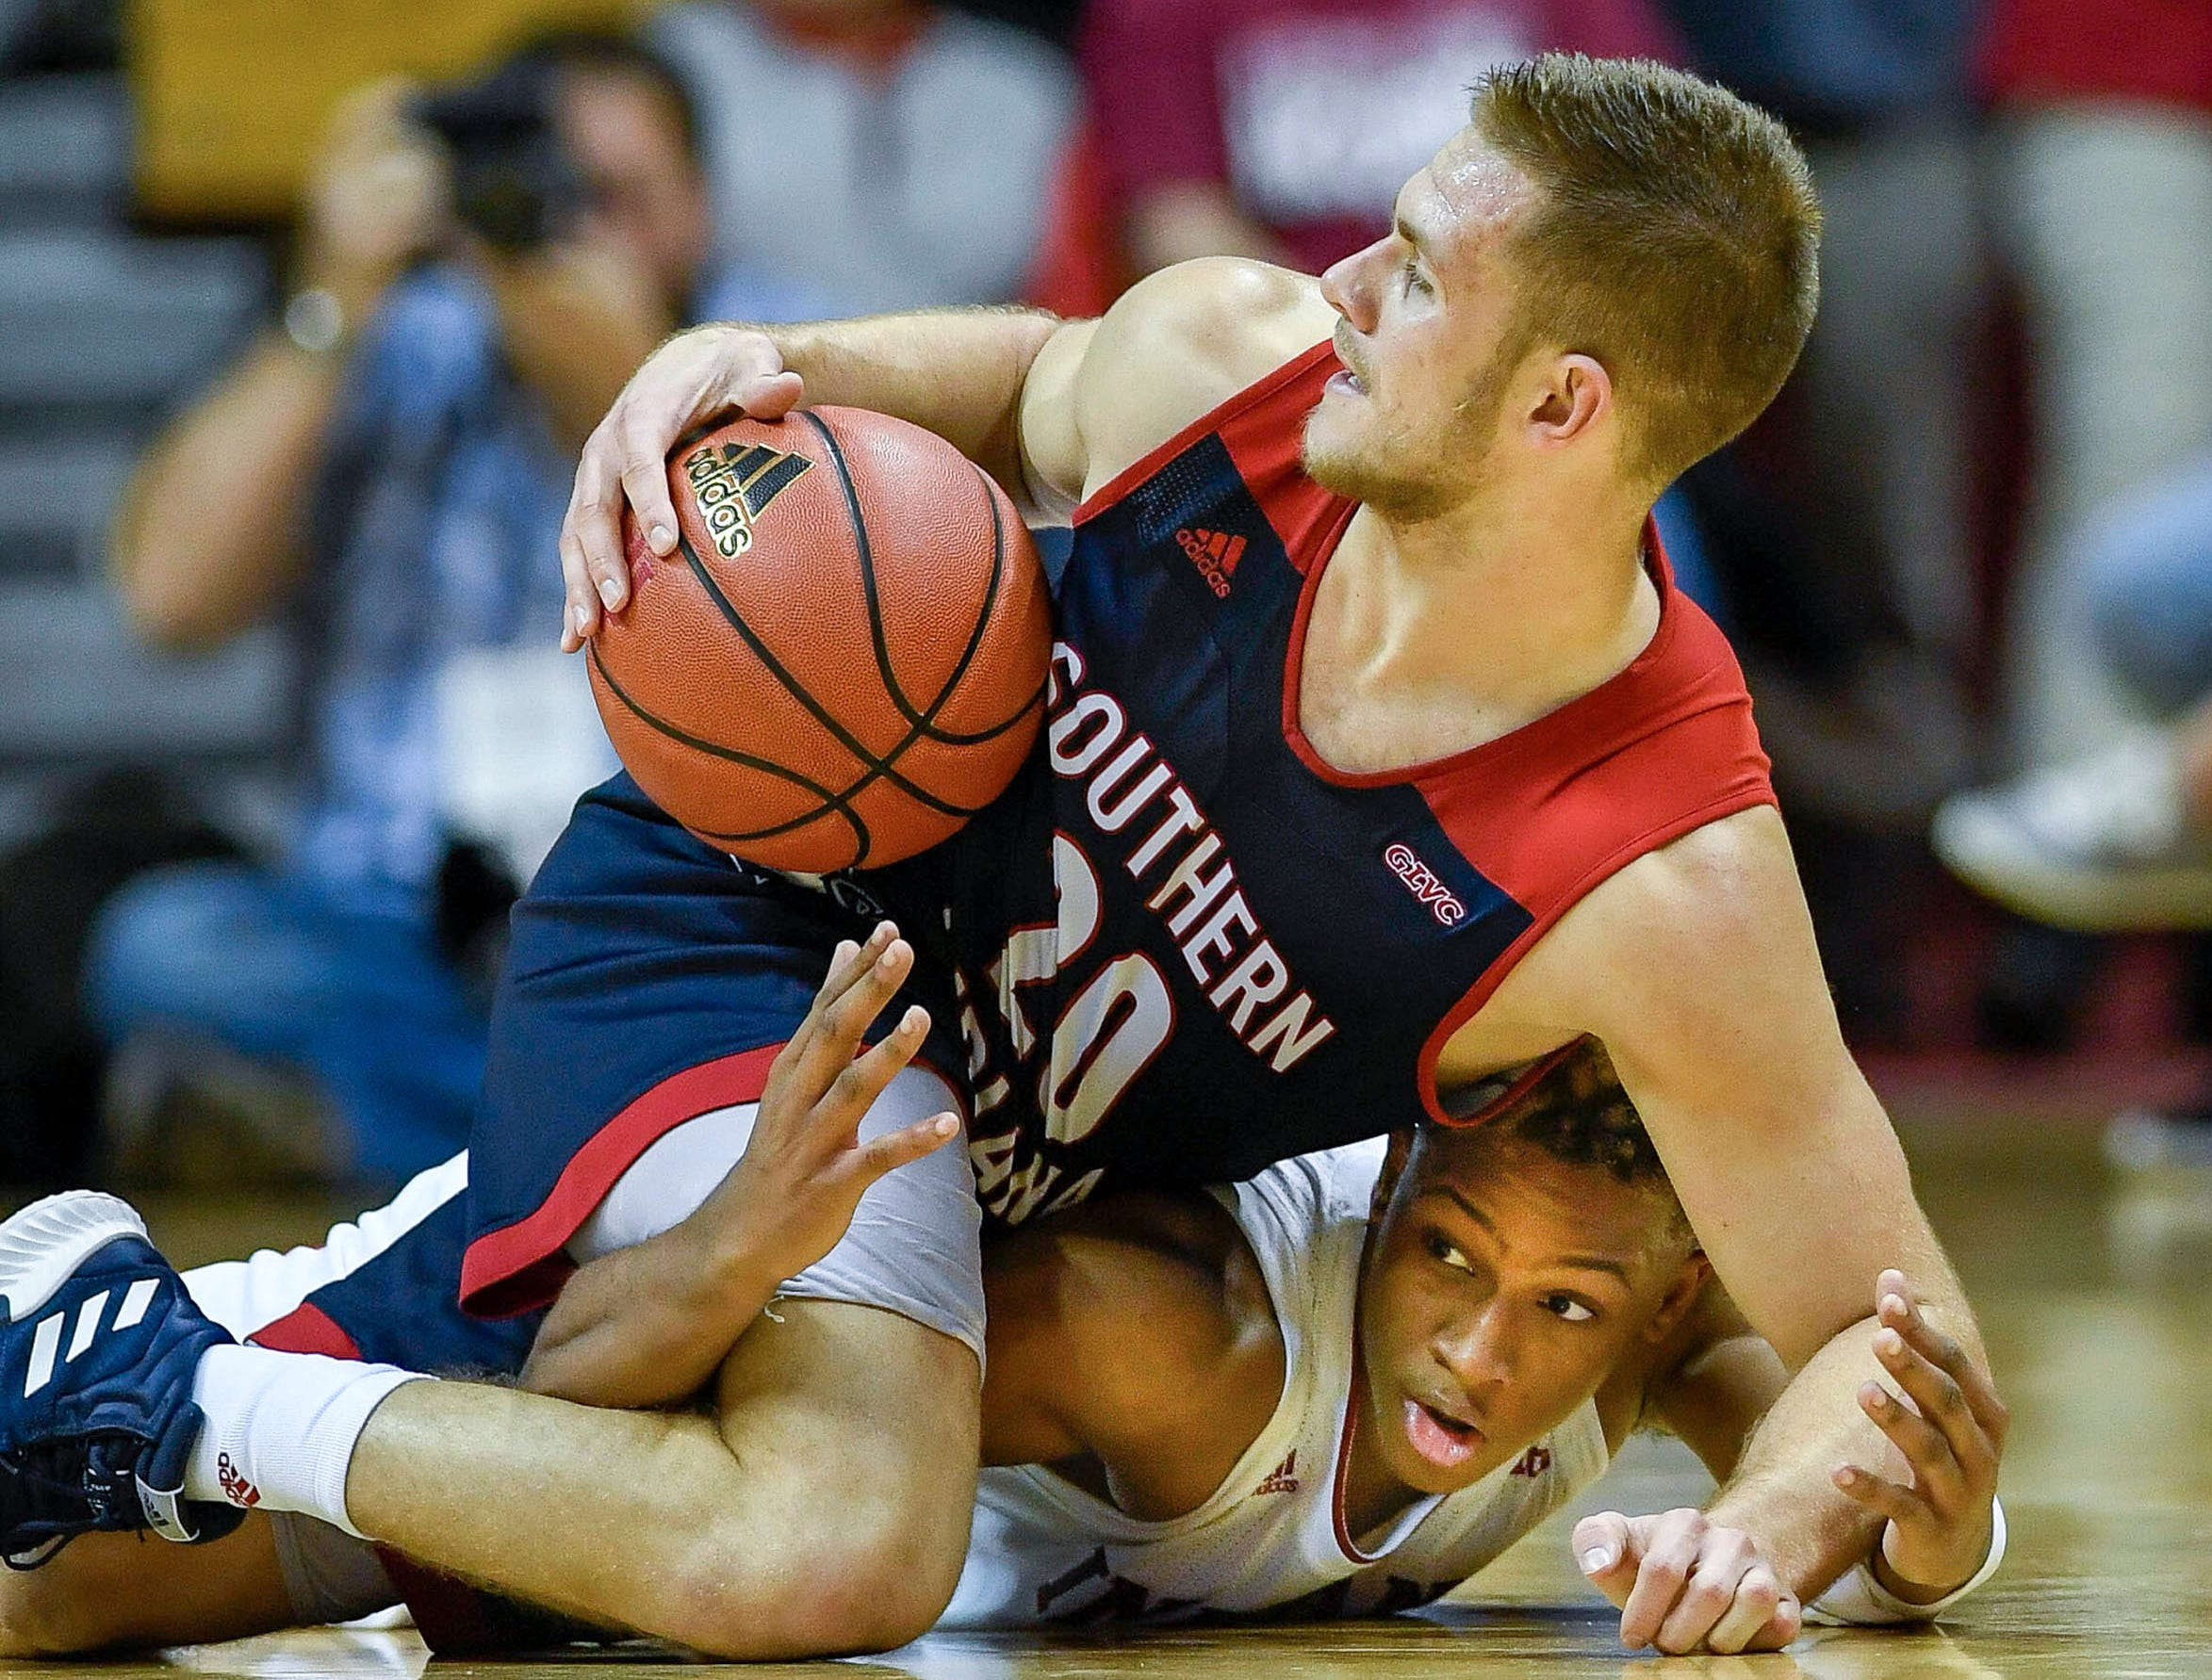 University of Southern Indiana's Alex Stein (20) scrambles on the floor with Indiana's Romeo Langford (0) as the University of Southern Indiana Screaming Eagles take on the Hoosiers of Indiana University in an exhibition game at Assembly Hall in Bloomington, Thursday, November 1, 2018.